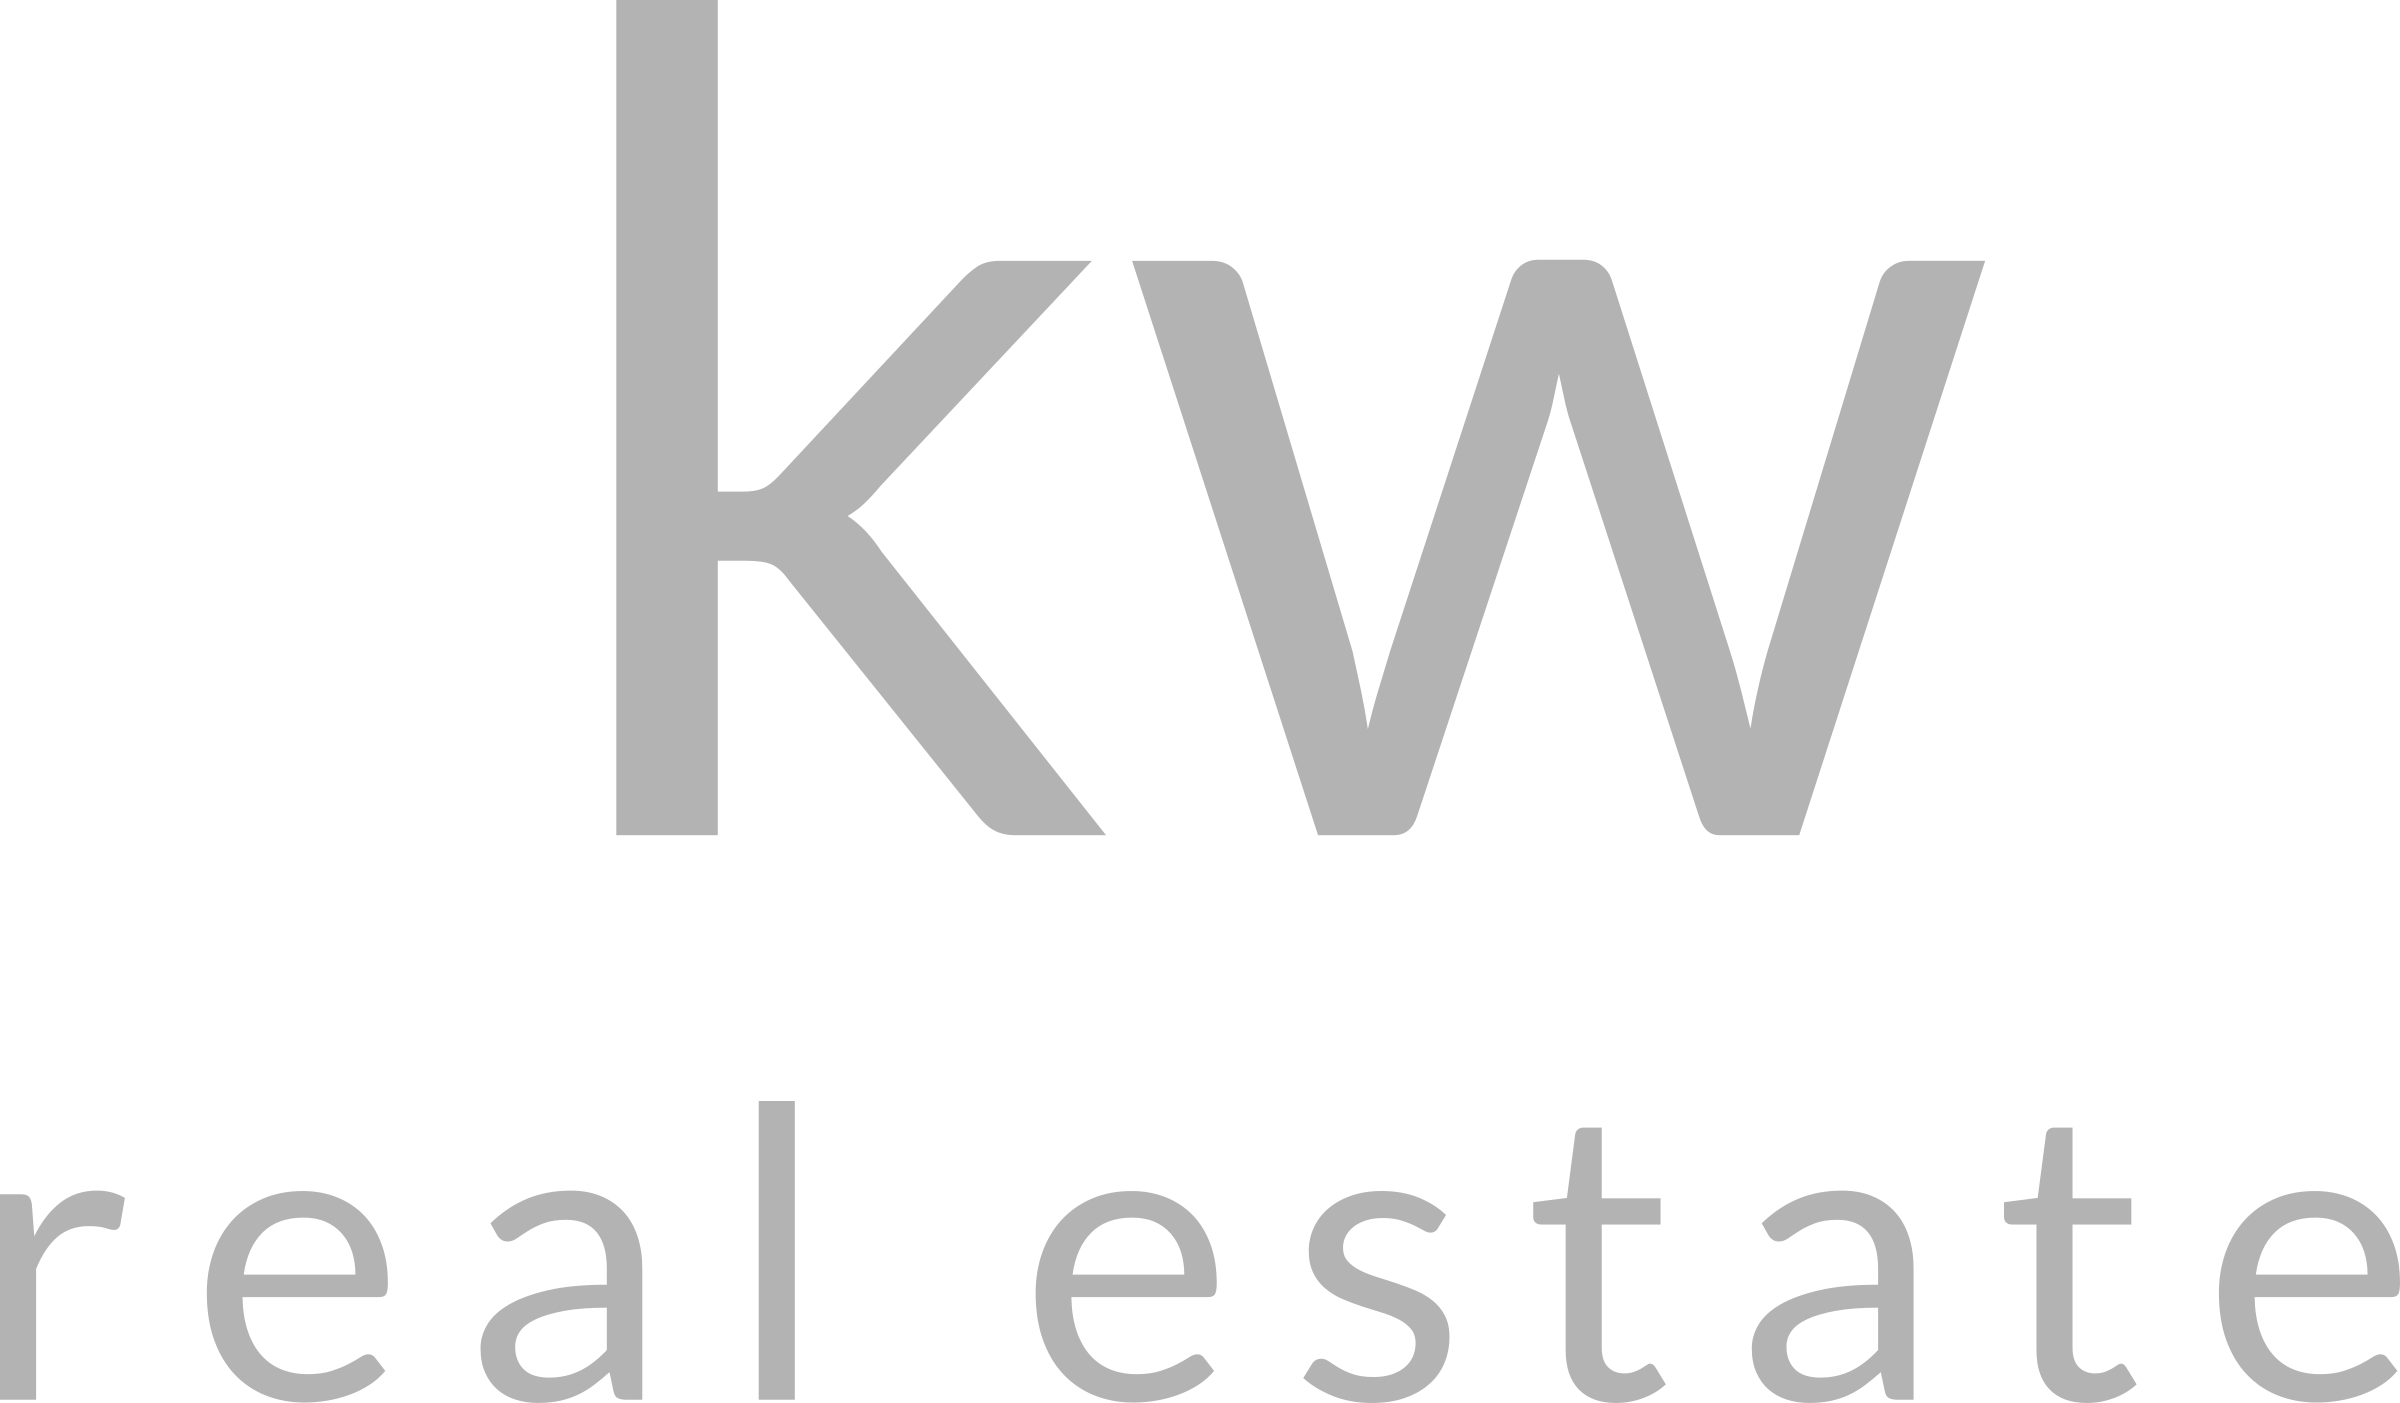 Kw log png. Keller williams real estate